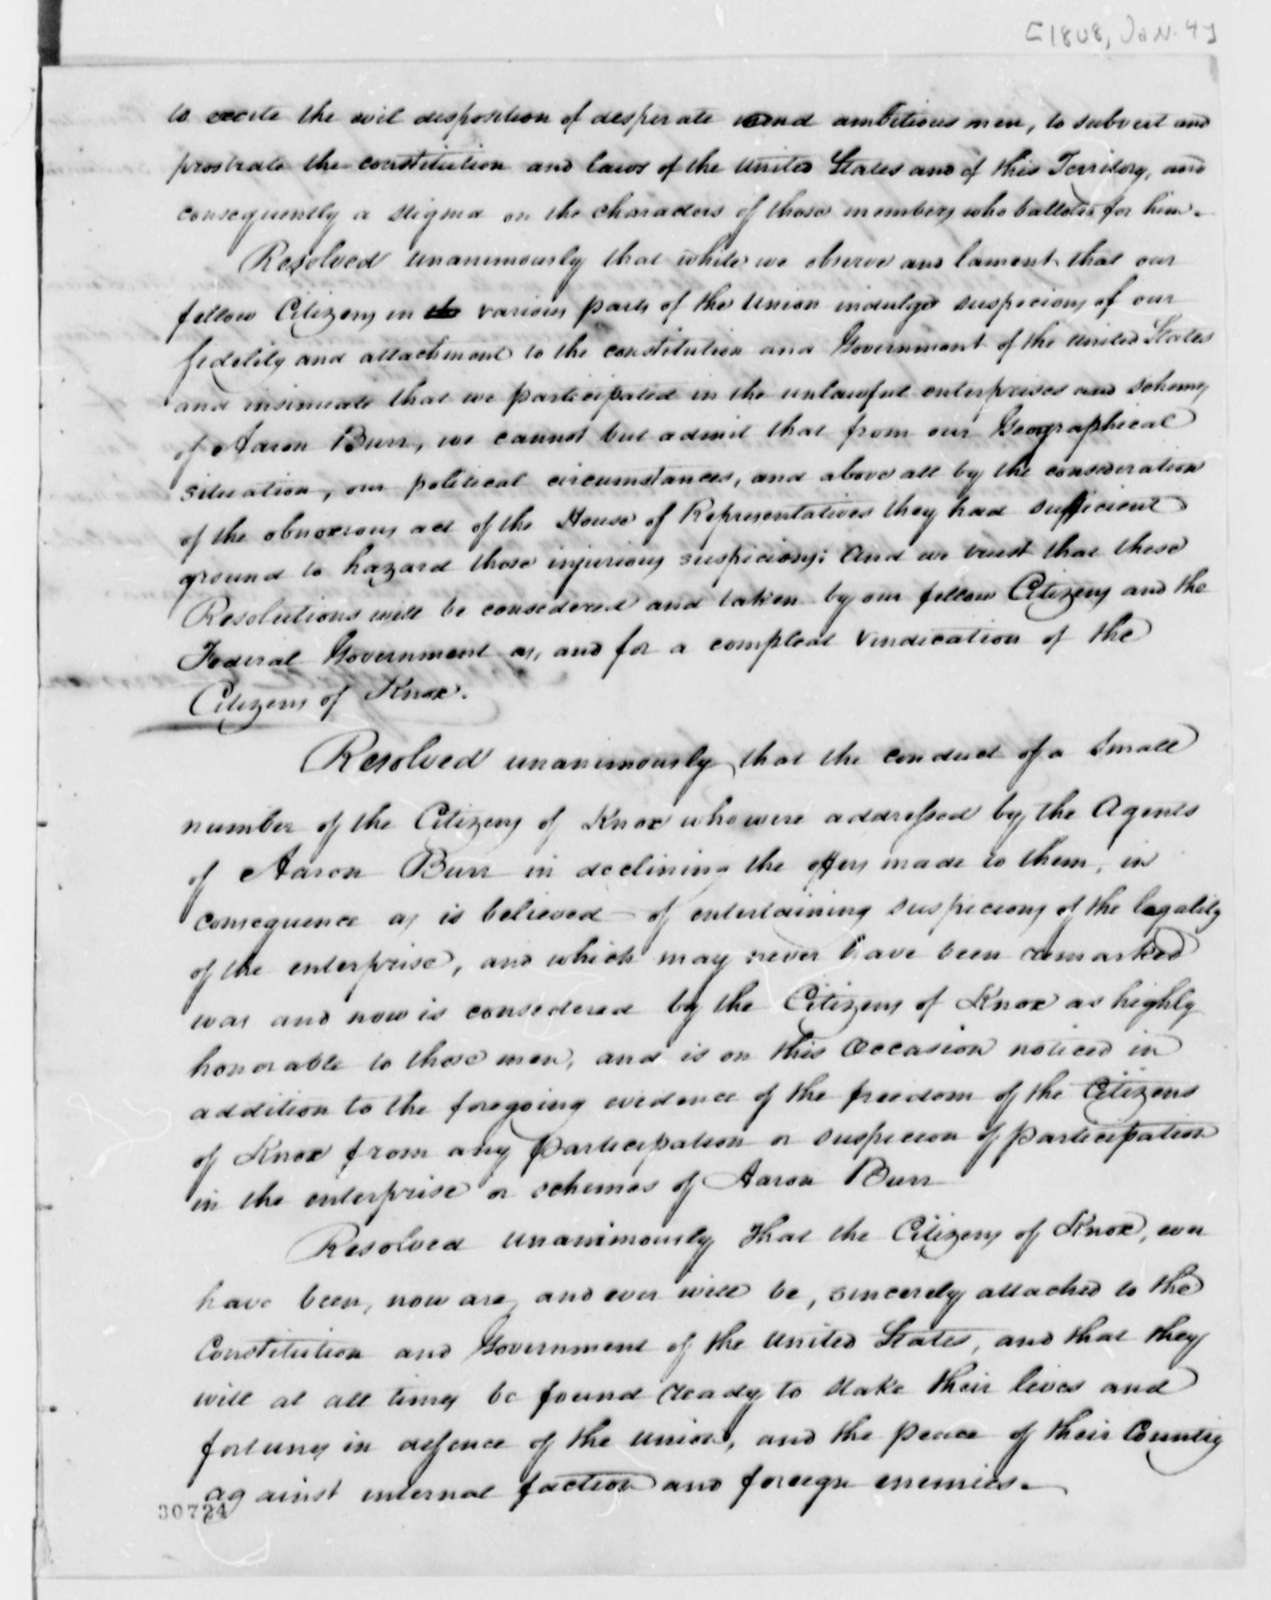 Knox County, Indiana Territory, Citizens, January 4, 1808, Resolution